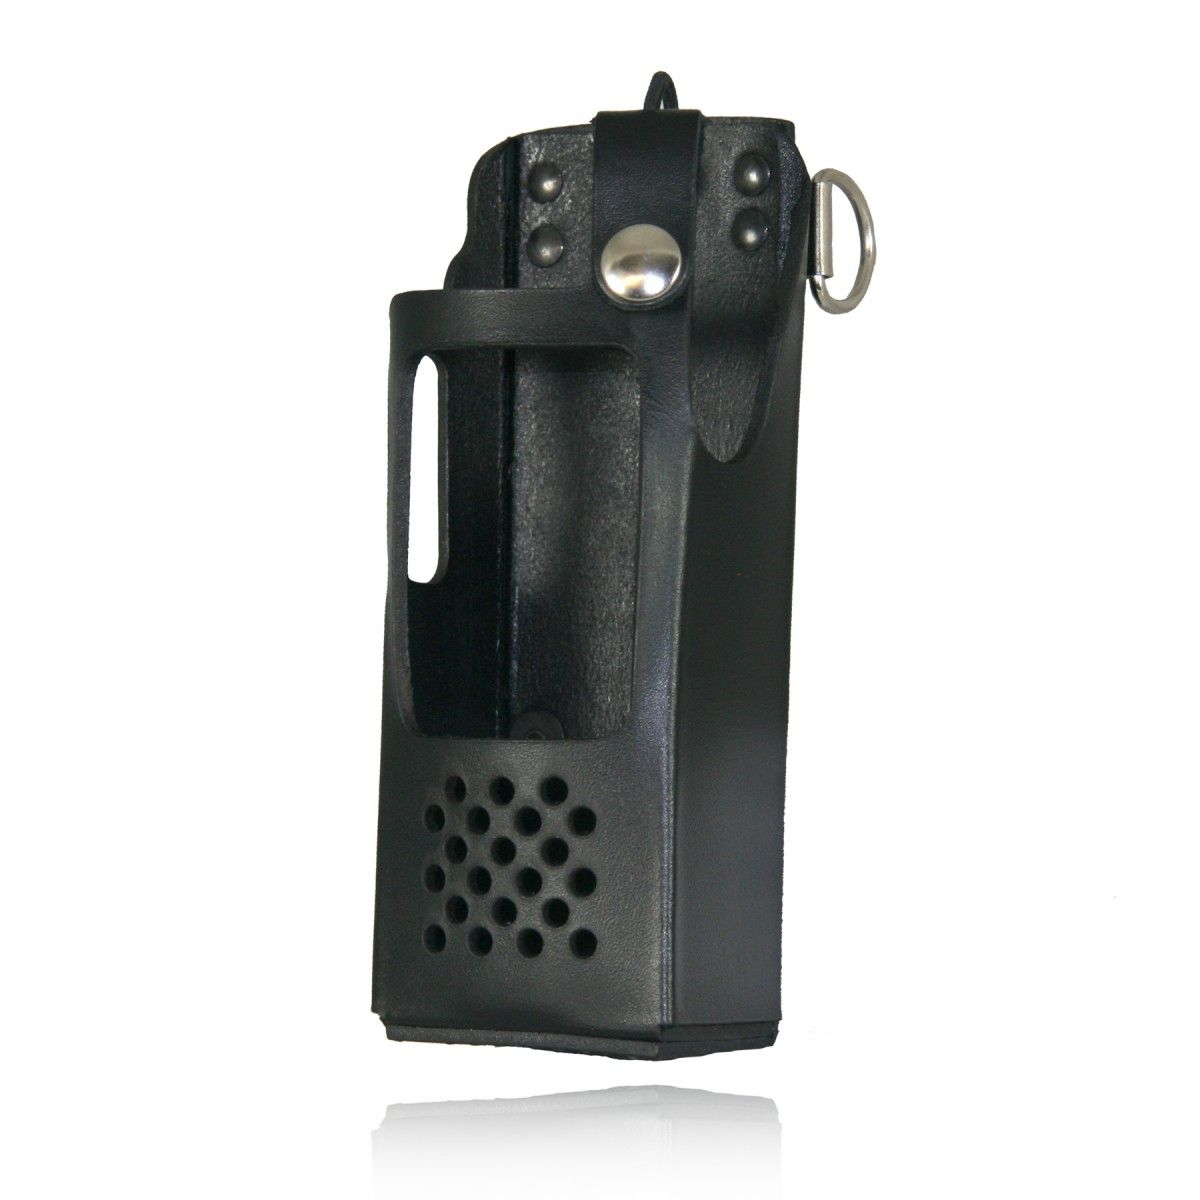 Firefighter's Radio Holder for EF Johnson 5100ES